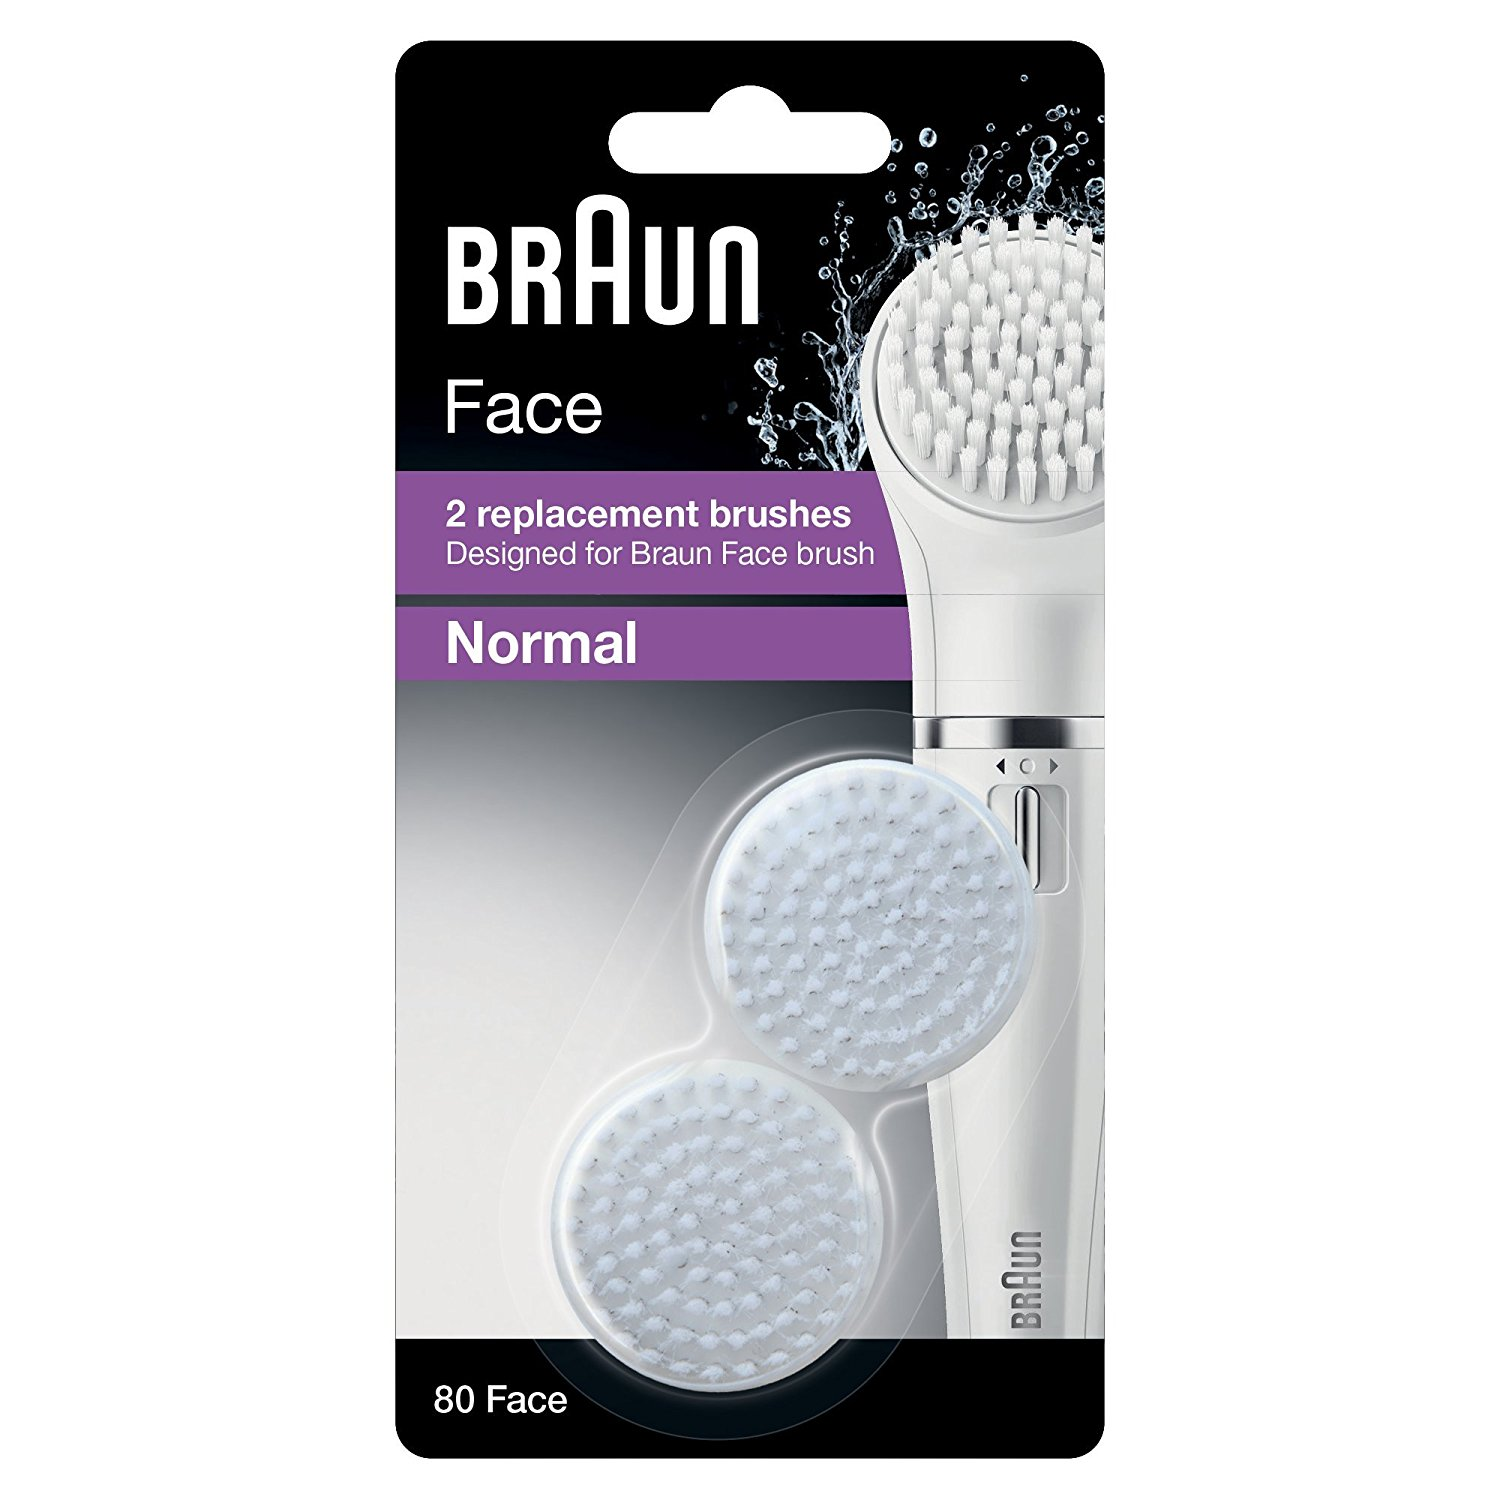 Braun Face 80 - Pack of 2 Brush Refills - Designed for Braun Face Cleansing Brush